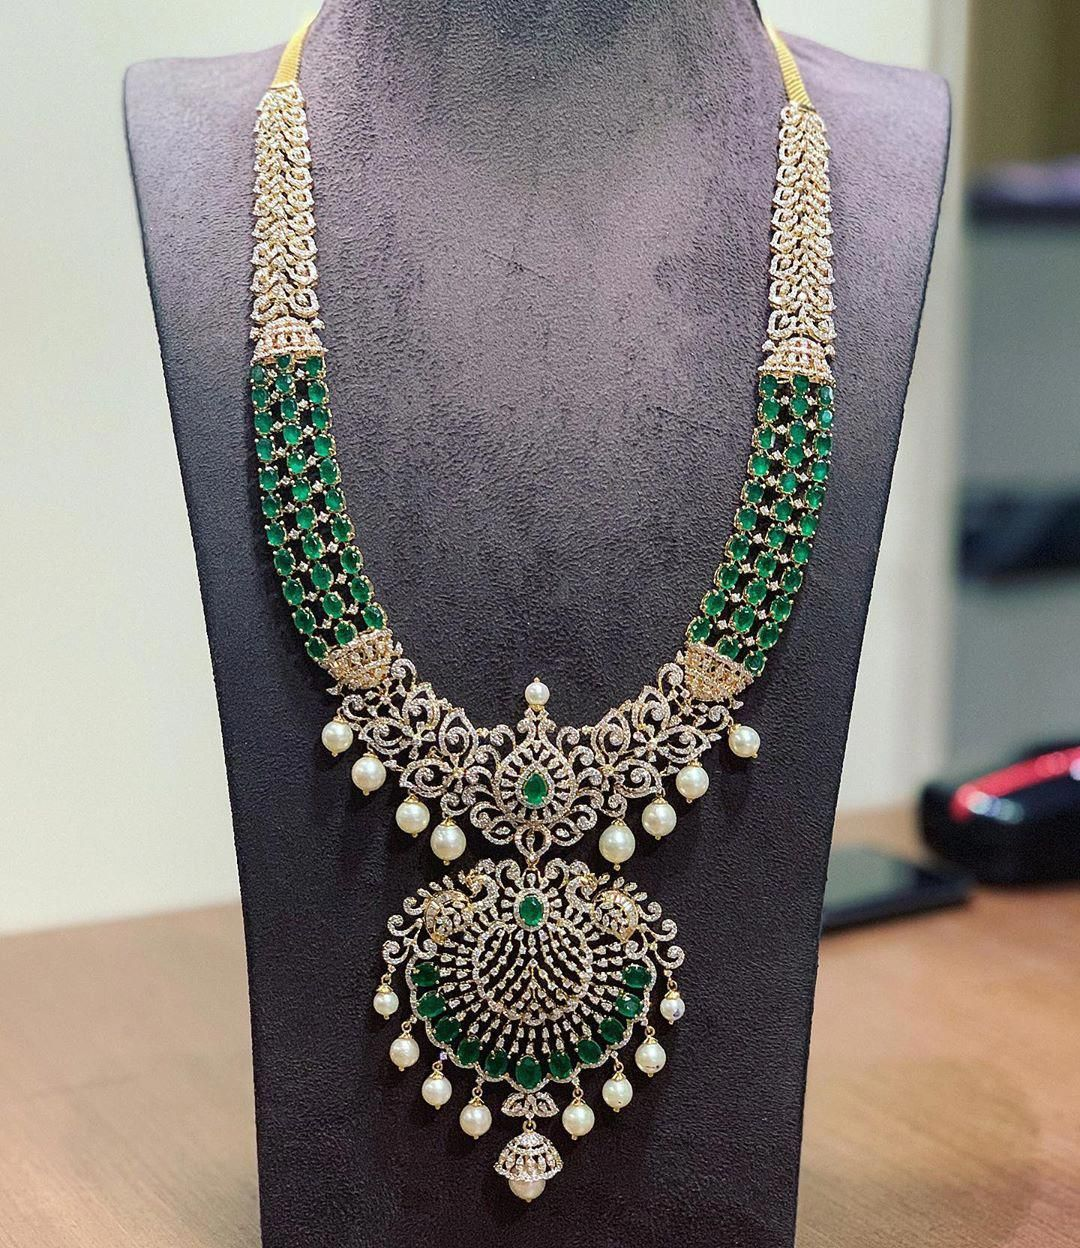 40+ Who sells the best jewelry information